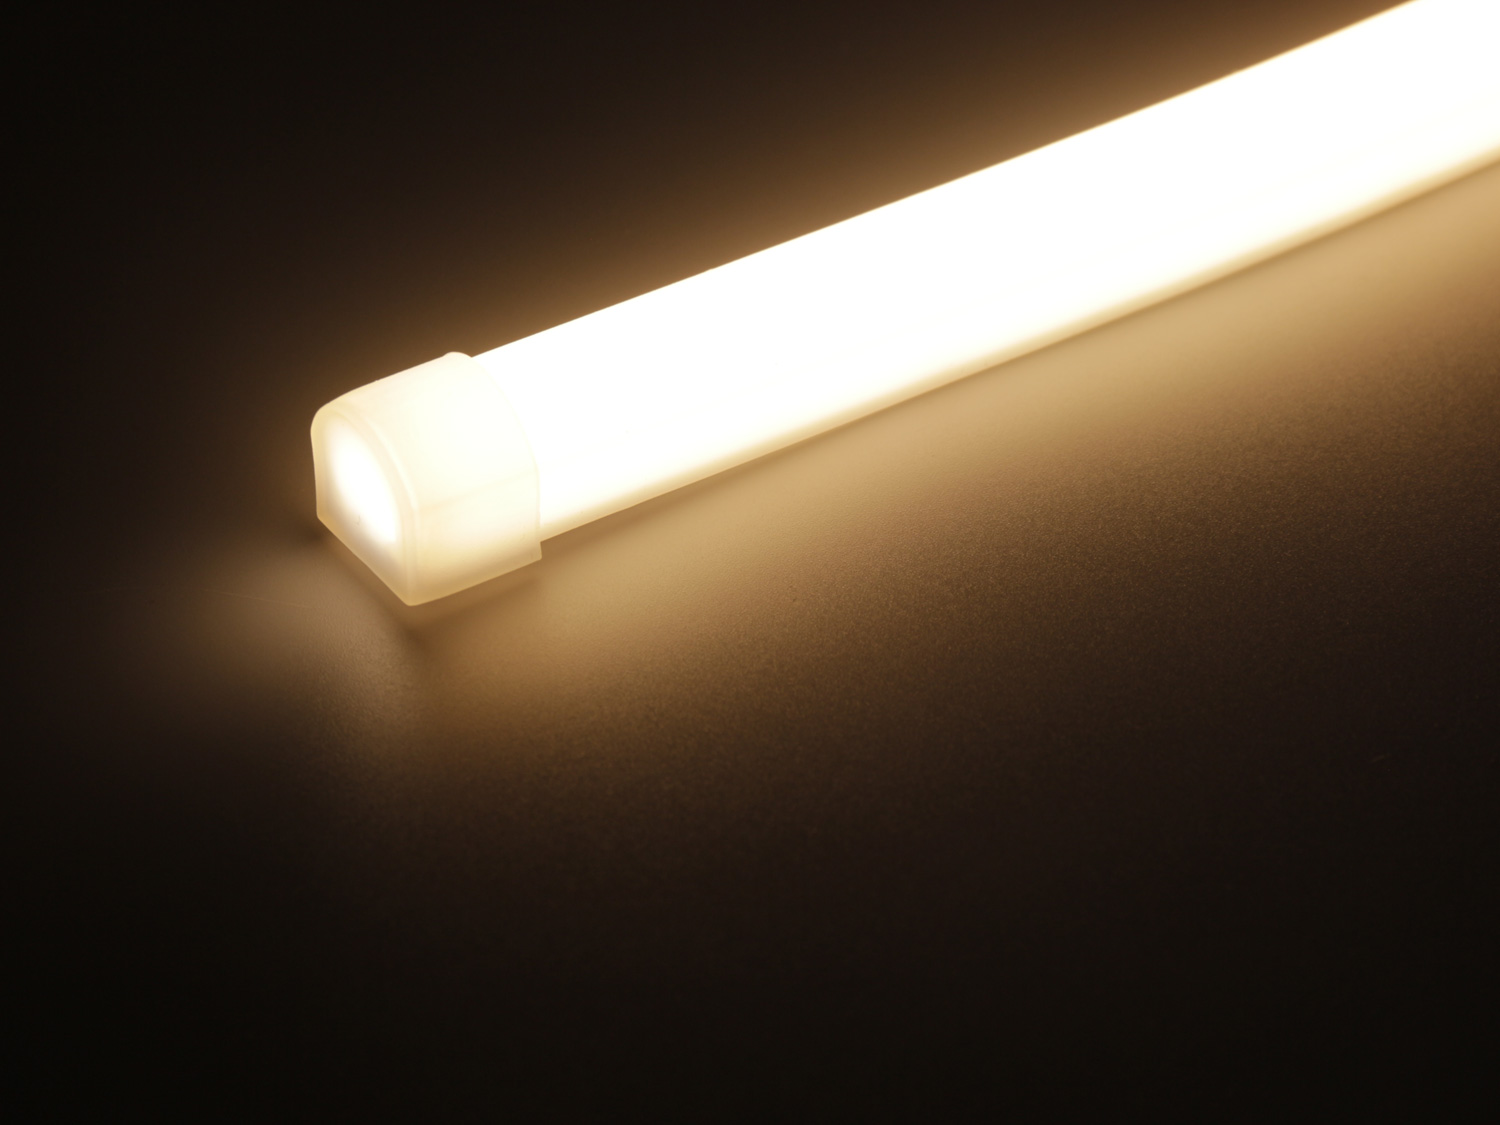 High Performance Dotless Flexible Linear Fixture LED Neon Strip Light LG10T1311_2